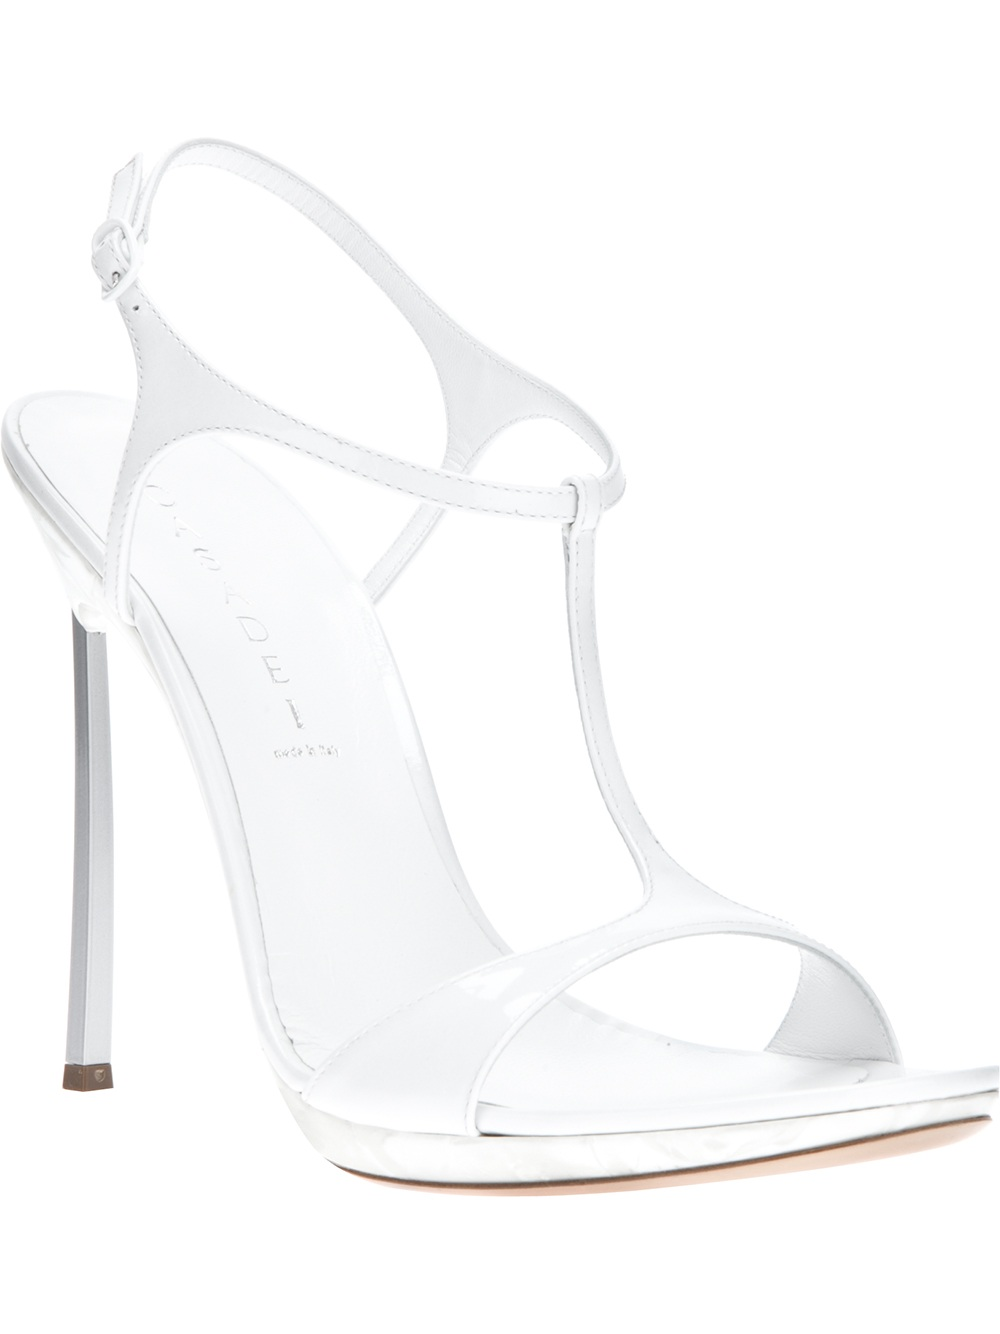 f121bc60d Lyst - Casadei Ankle Strap Sandal in White